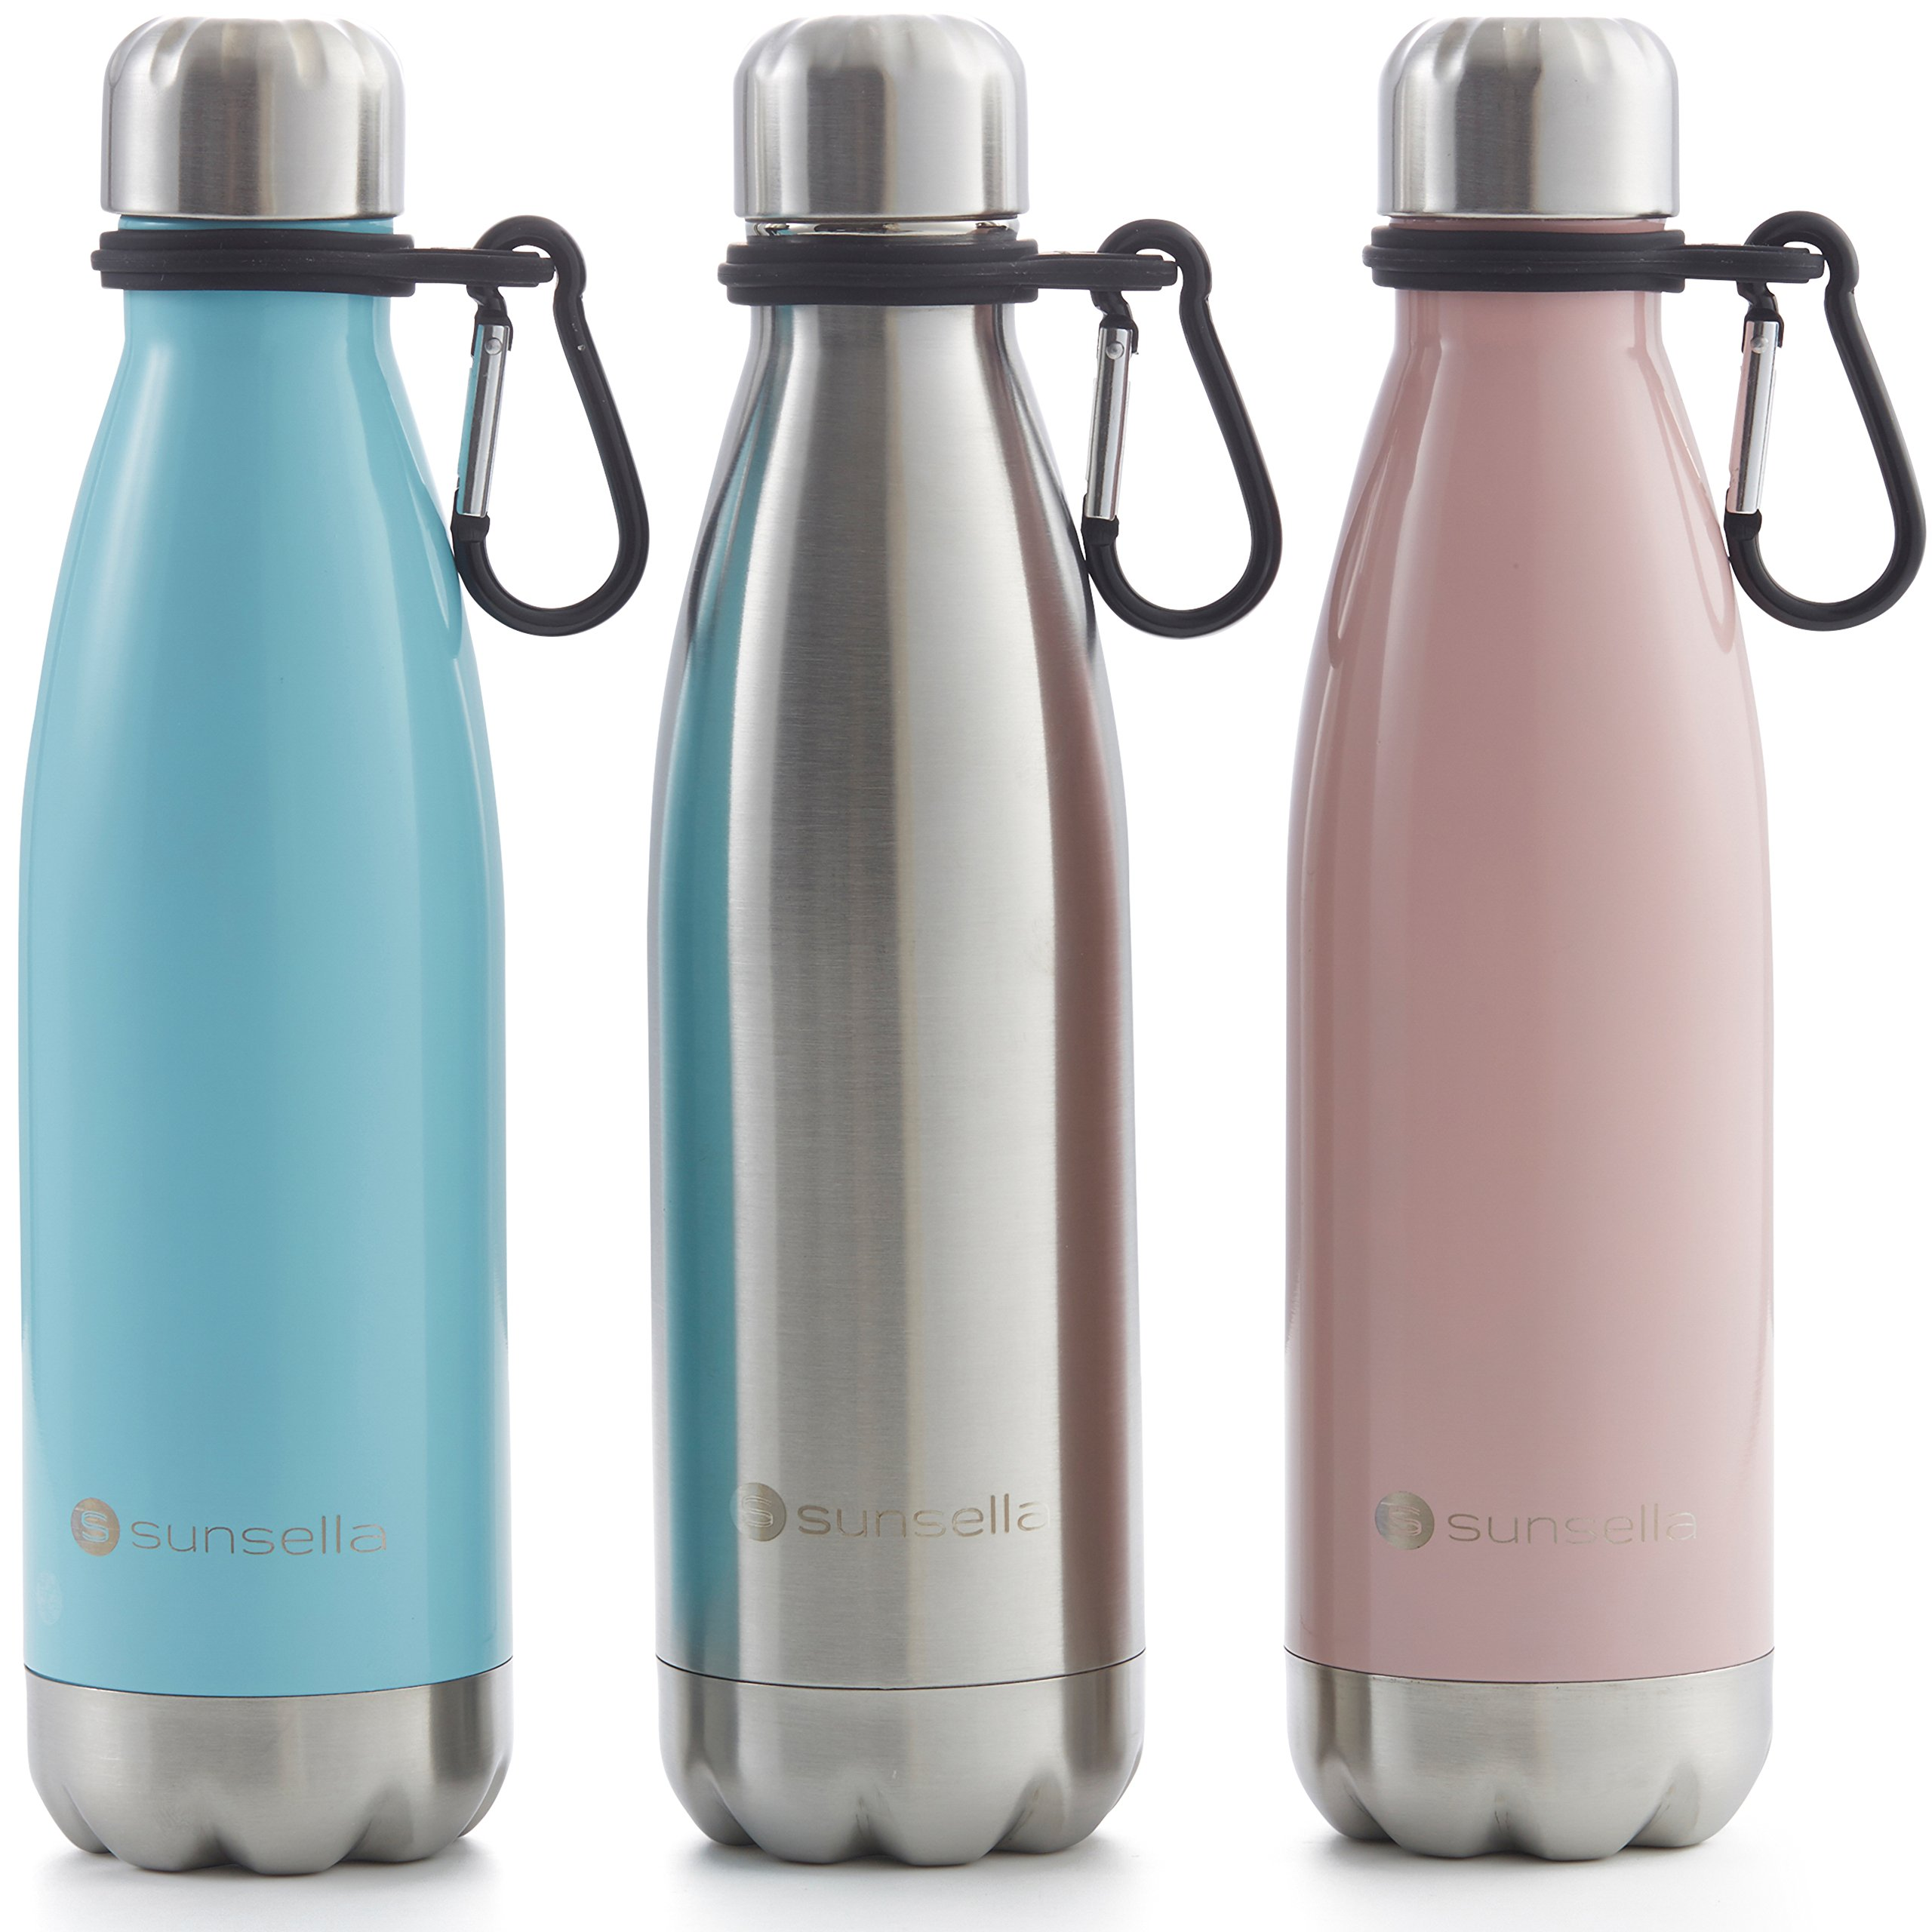 Vacuum Insulated Stainless Steel Water Bottle With Carrier Clip – Leakproof Double Wall - 17 Ounce – Drinks 24 Hour HOT and COLD. By Sunsella (Rose)